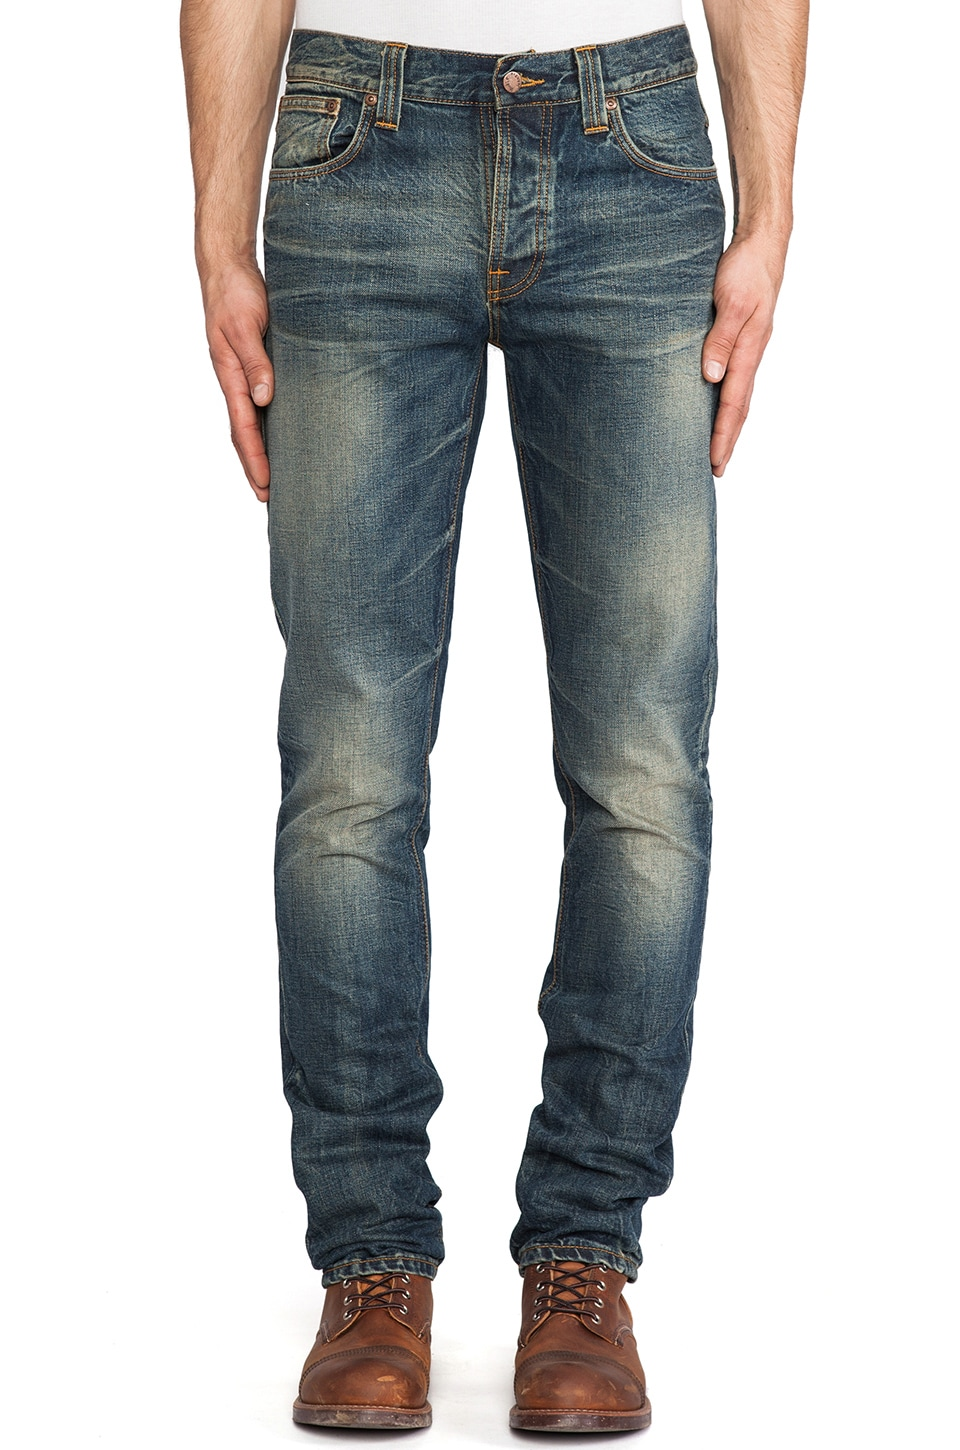 Nudie Jeans Grim Tim in Org. Gritty Blue